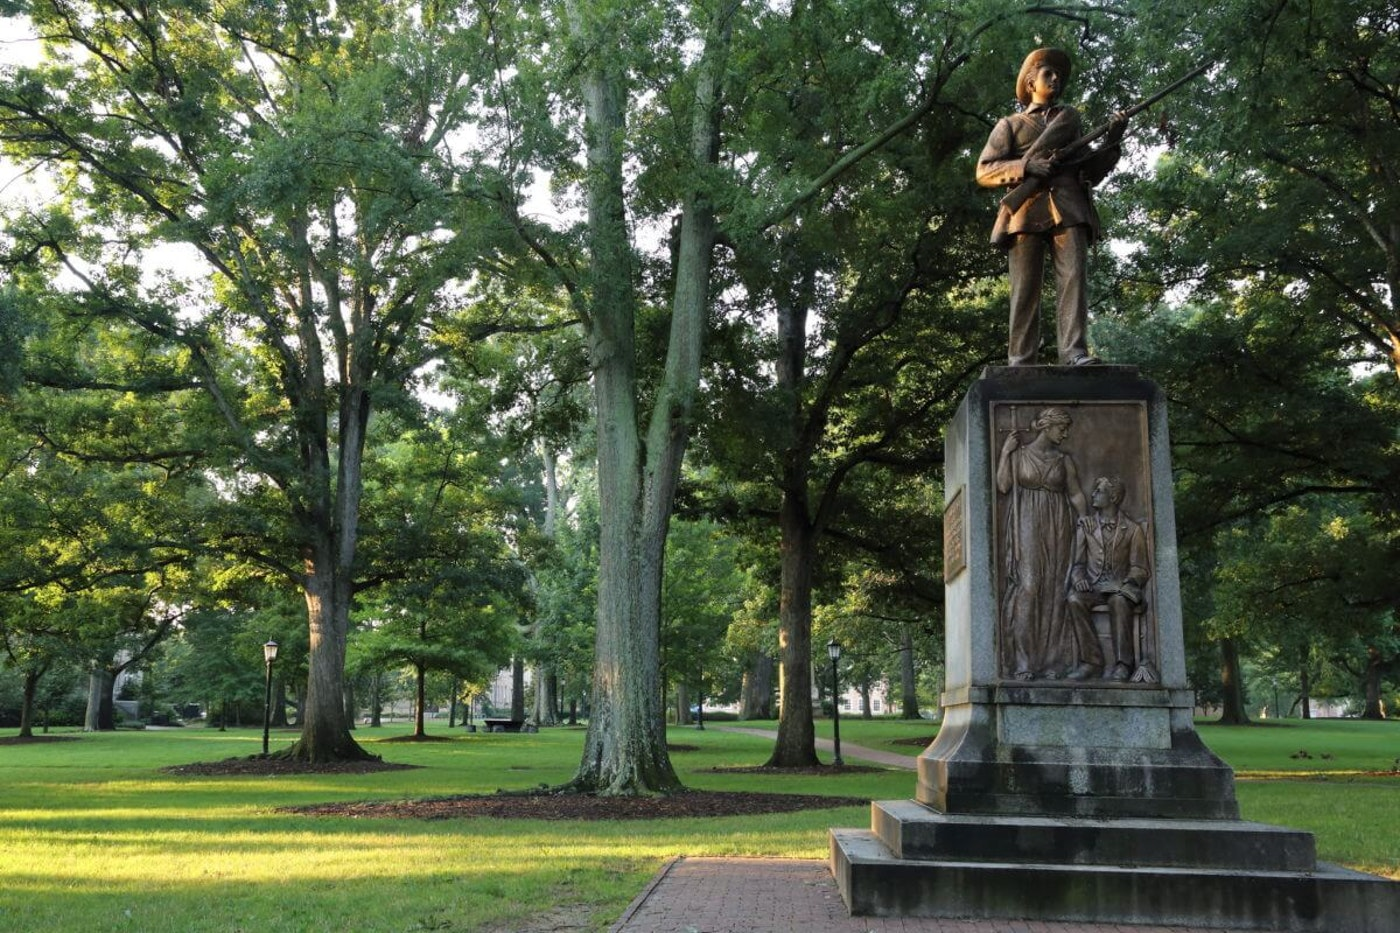 Silent Sam before it was taken down | Image via Don McCullough / Flickr